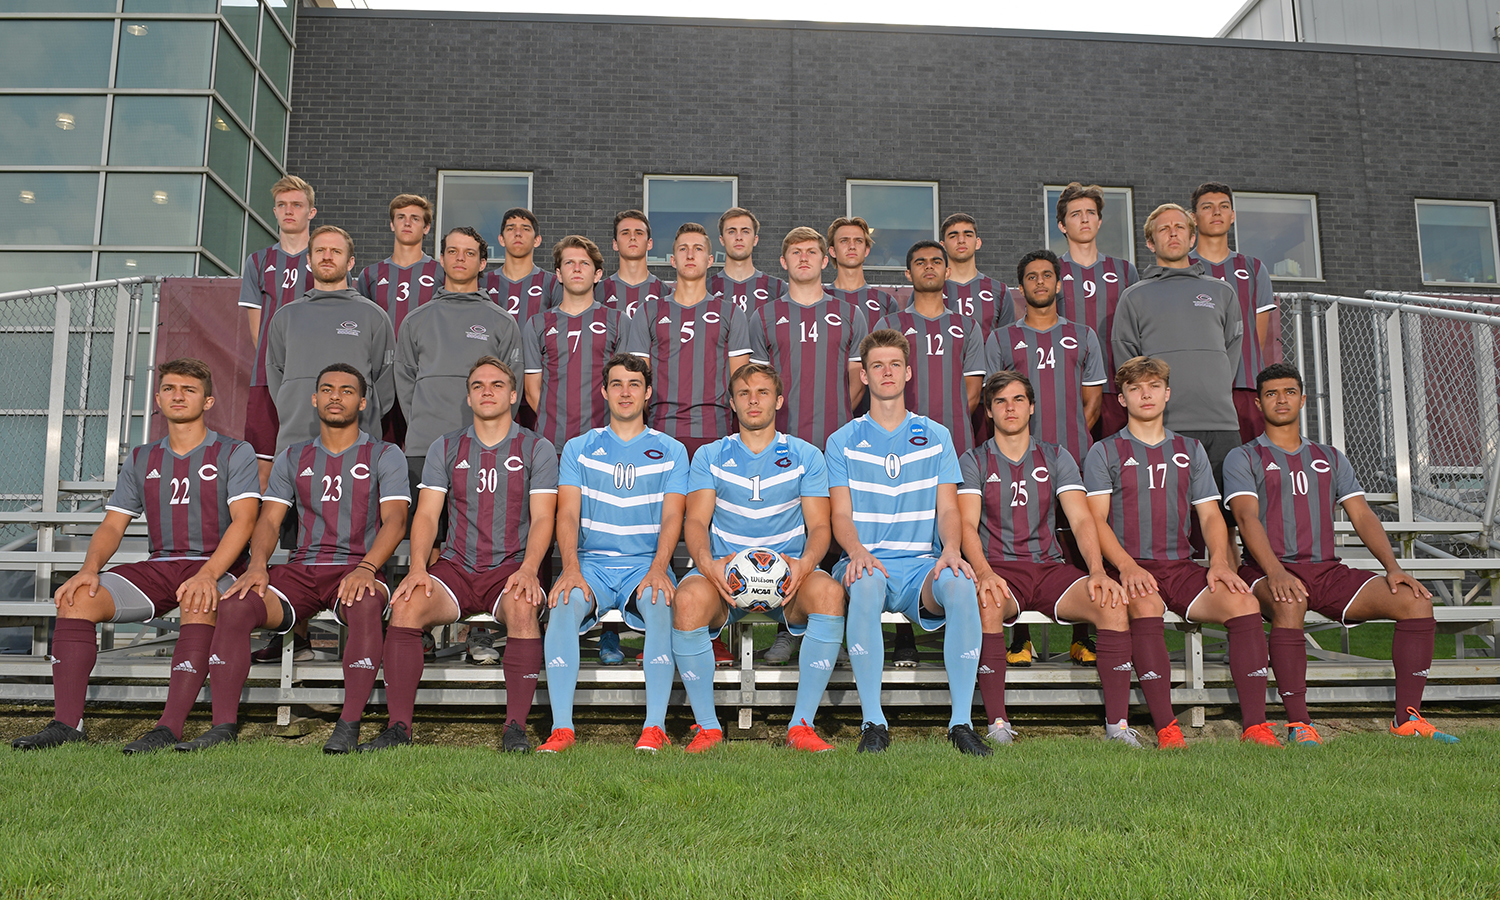 2019 UChicago Men's Soccer Season Preview